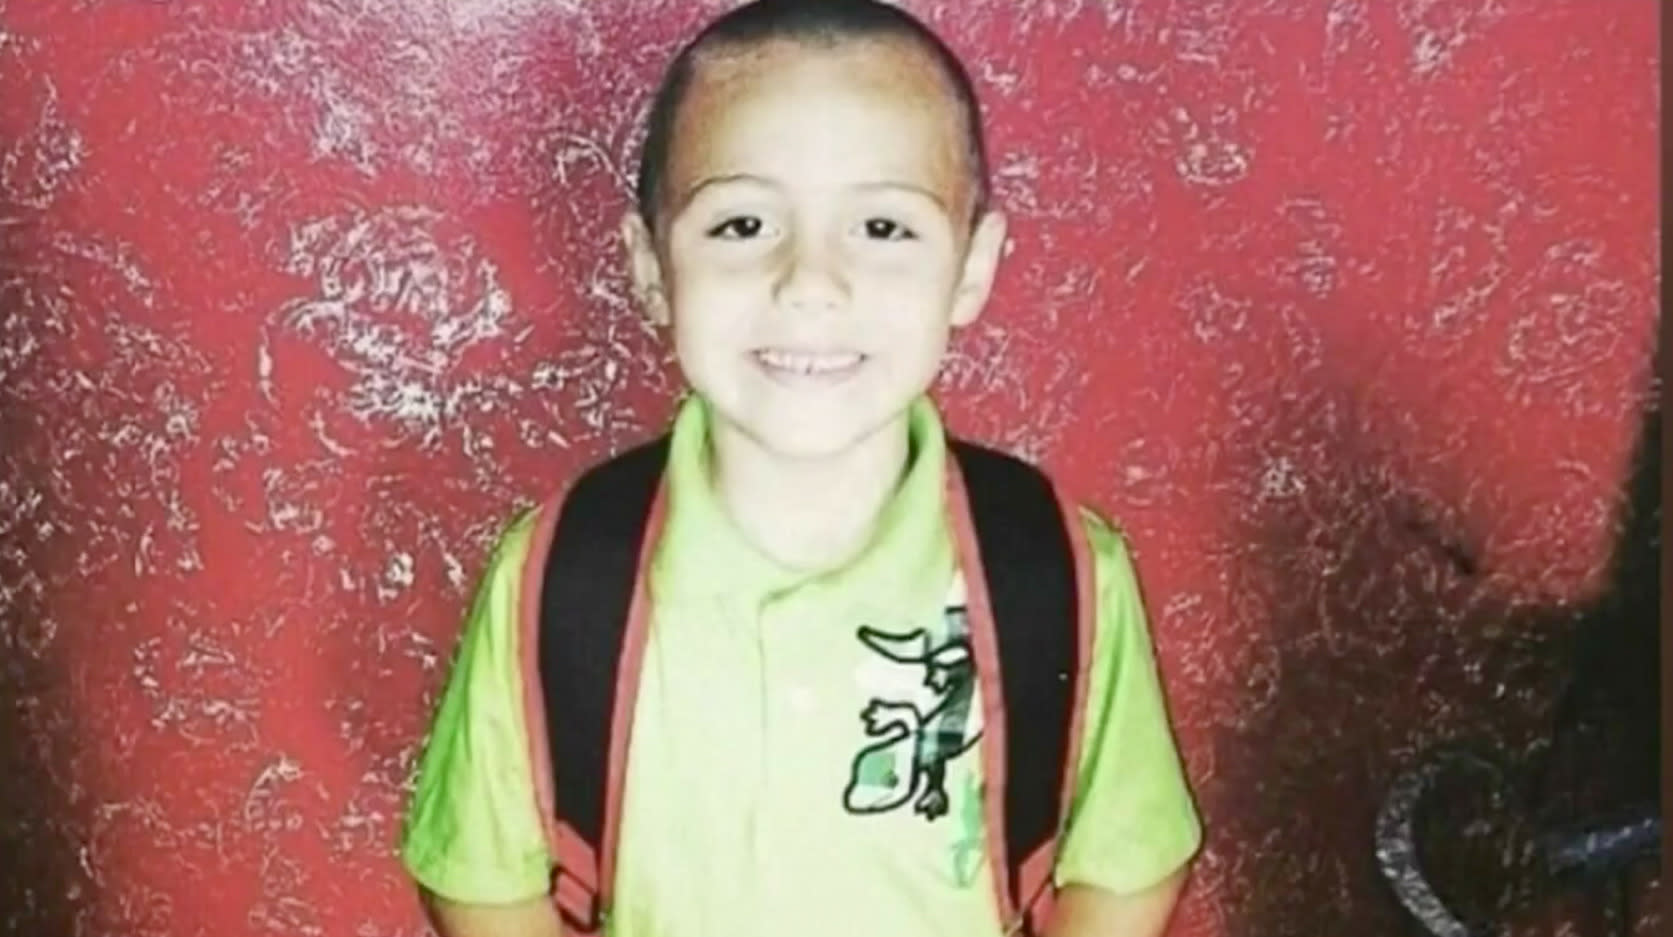 10-Year-Old Boy Allegedly Said He 'Liked Boys' Before Being Beaten To Death